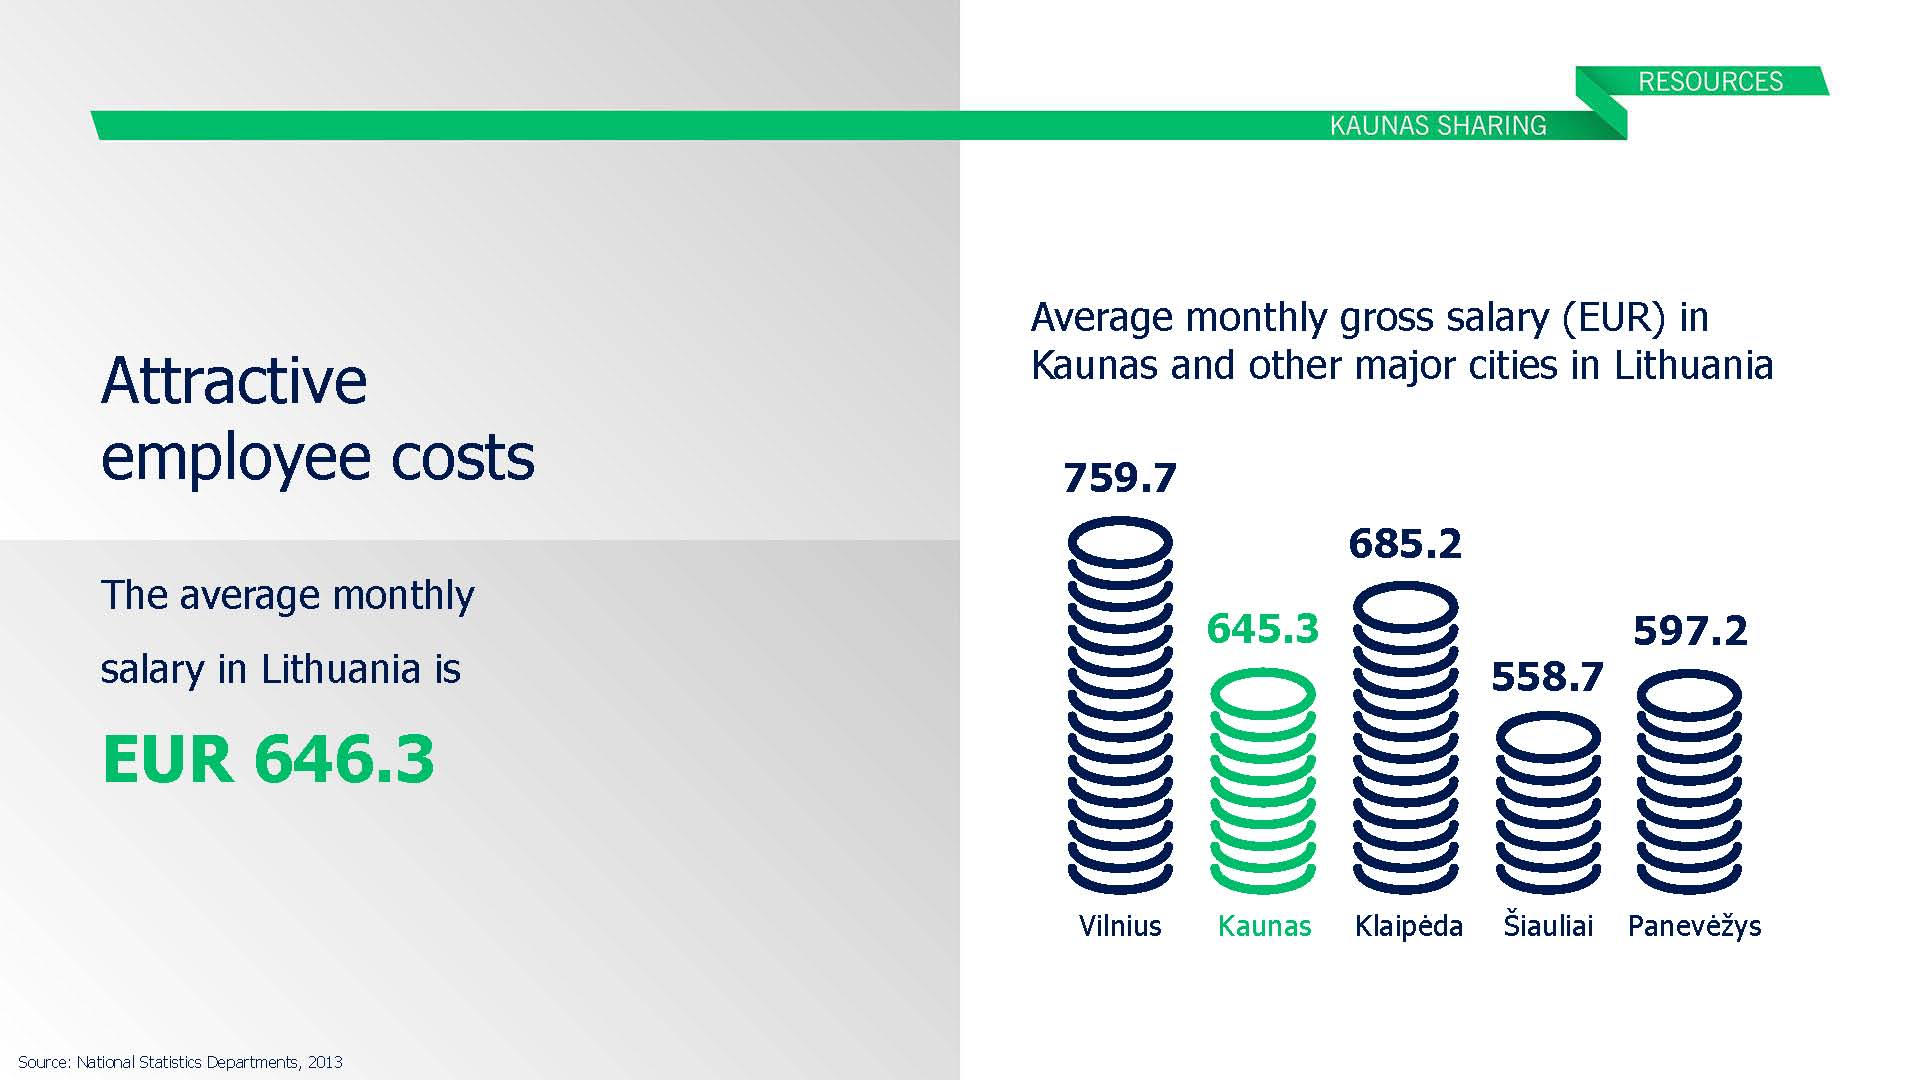 Why investing in kaunas